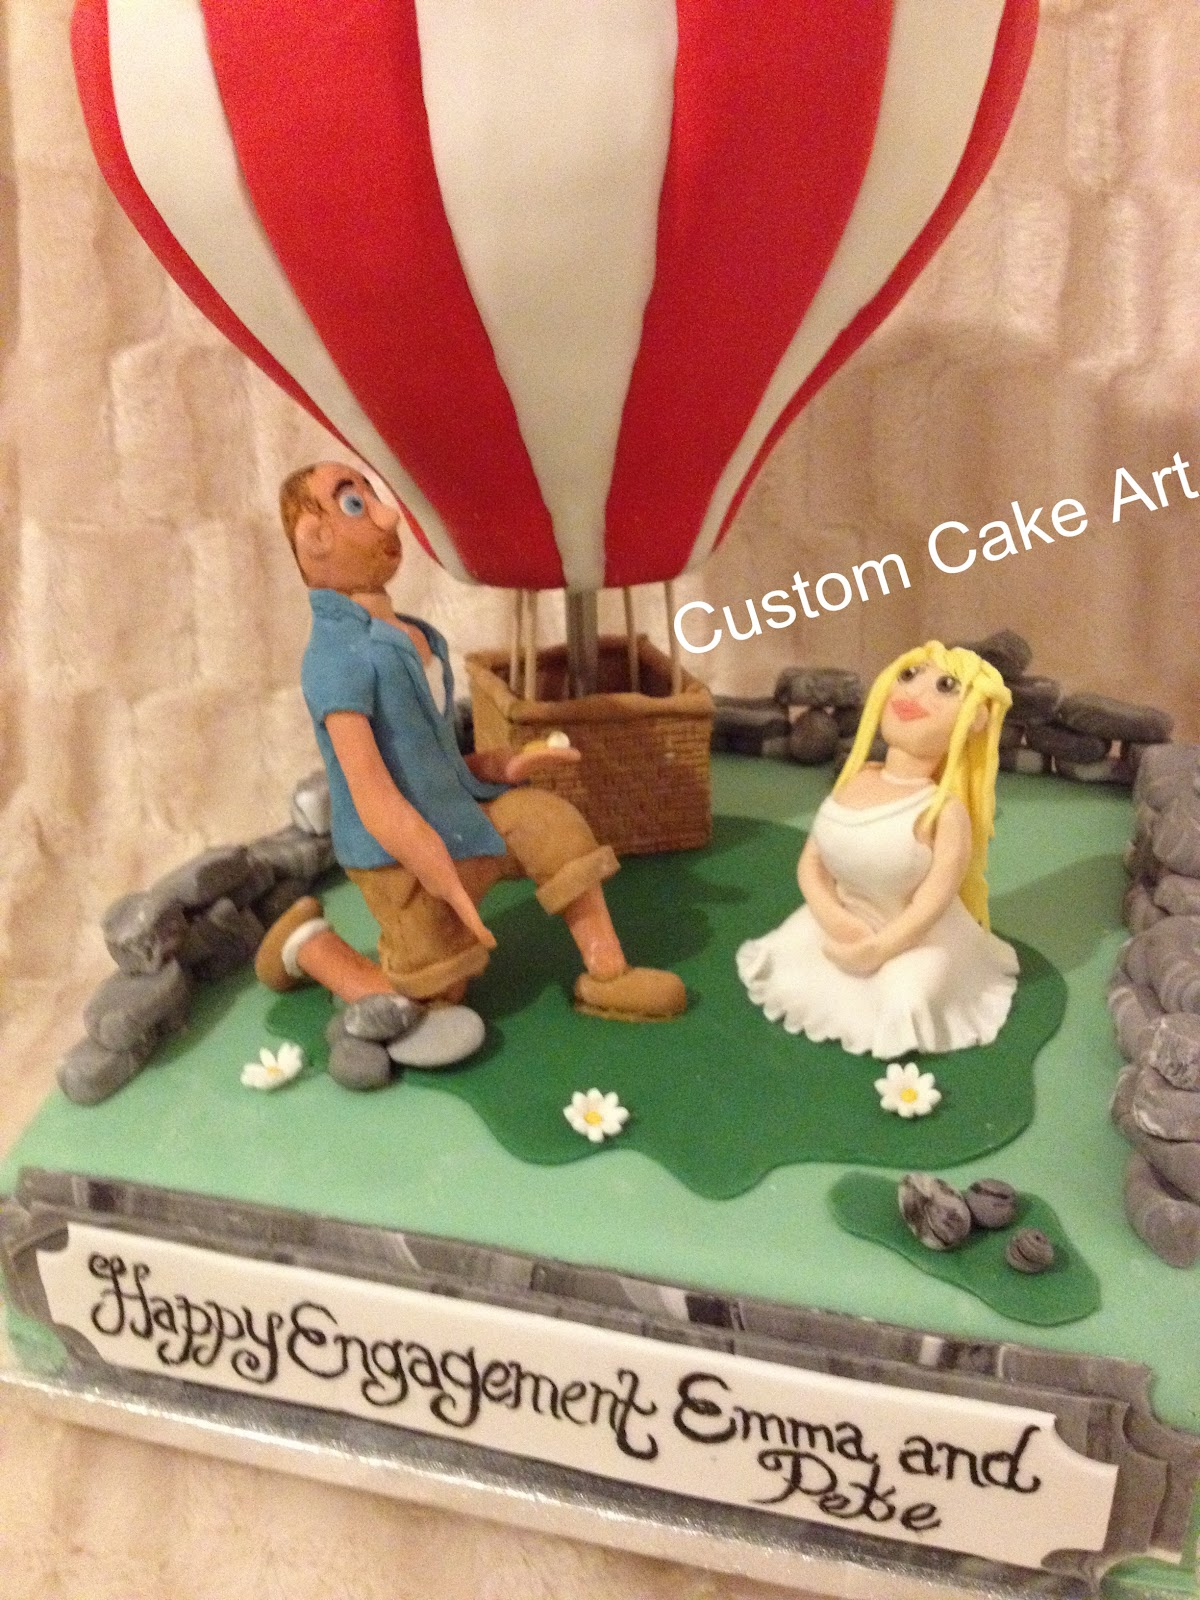 Custom Cake Art: USA Hotair Balloon Cake